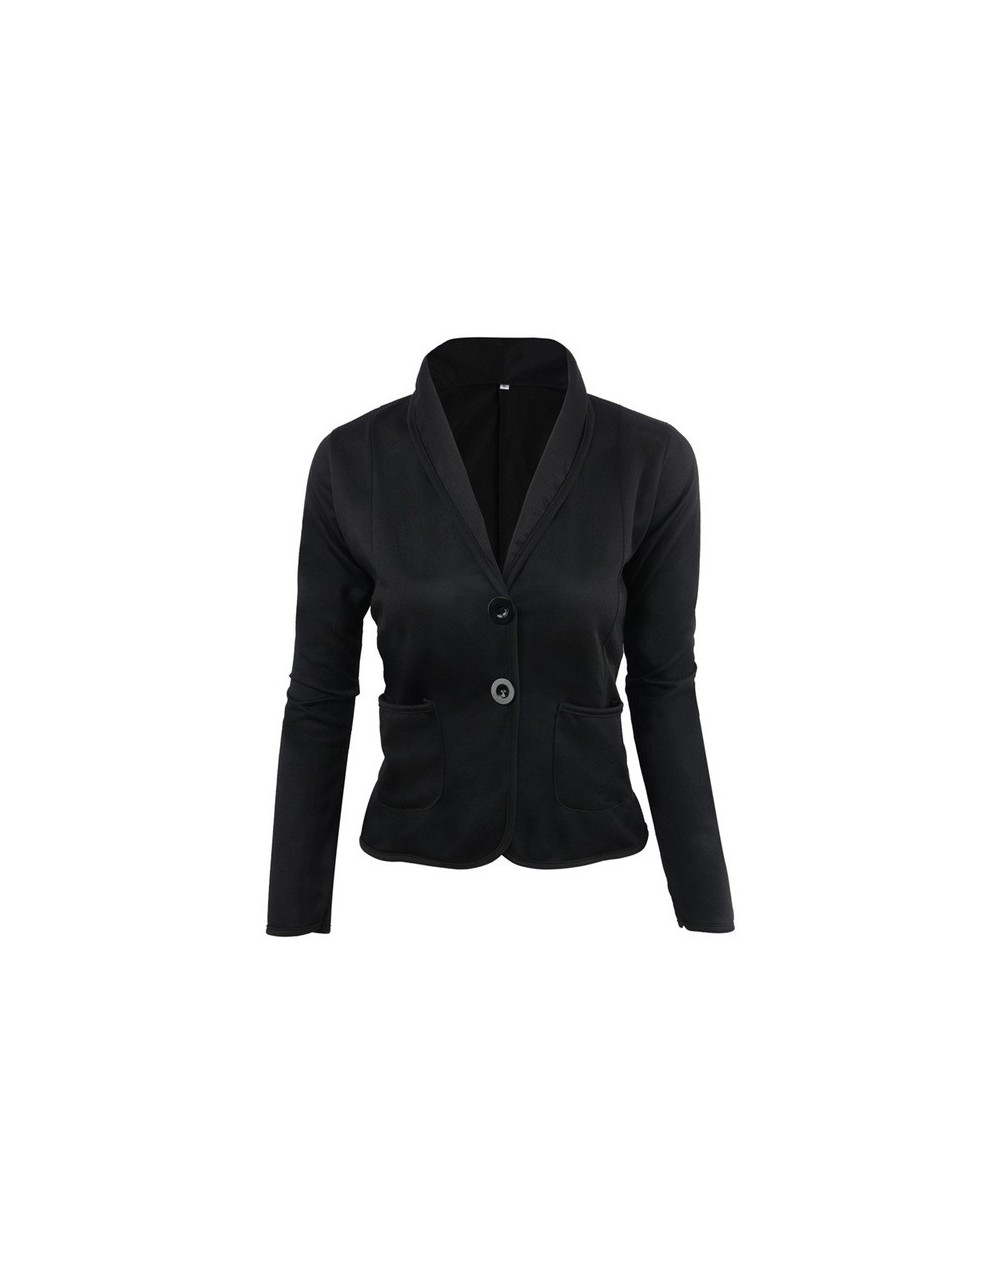 College Style Women Full Sleeve Blazers Spring Autumn Plus Size Suit Jacket Work Office Lady Suit Women Slim Button Basic Co...